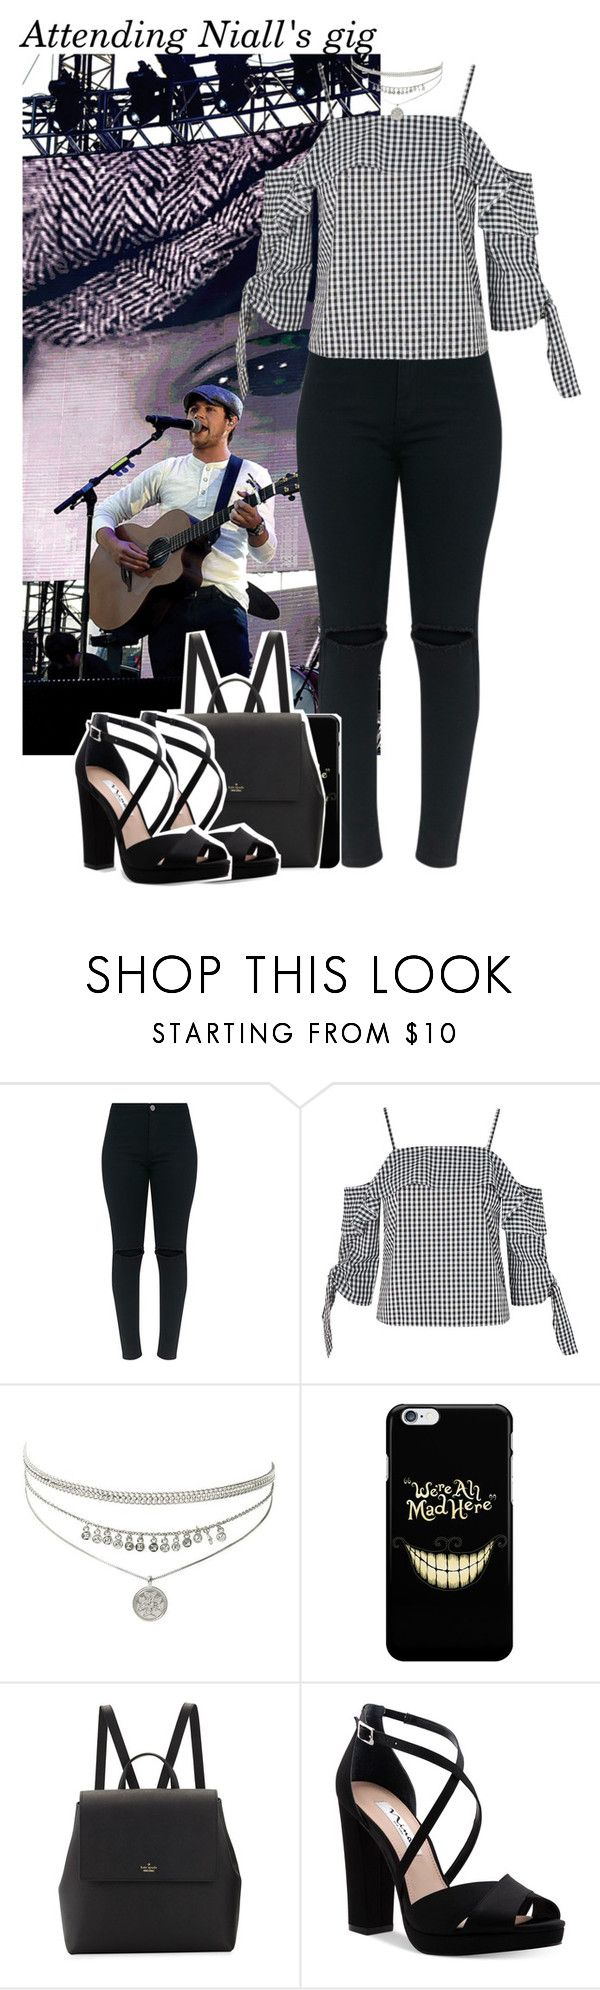 """982 • Attending Niall's gig"" by queenxxbee ❤ liked on Polyvore featuring Justin Bieber, Topshop, Kate Spade, Nina, OneDirection and NiallHoran"